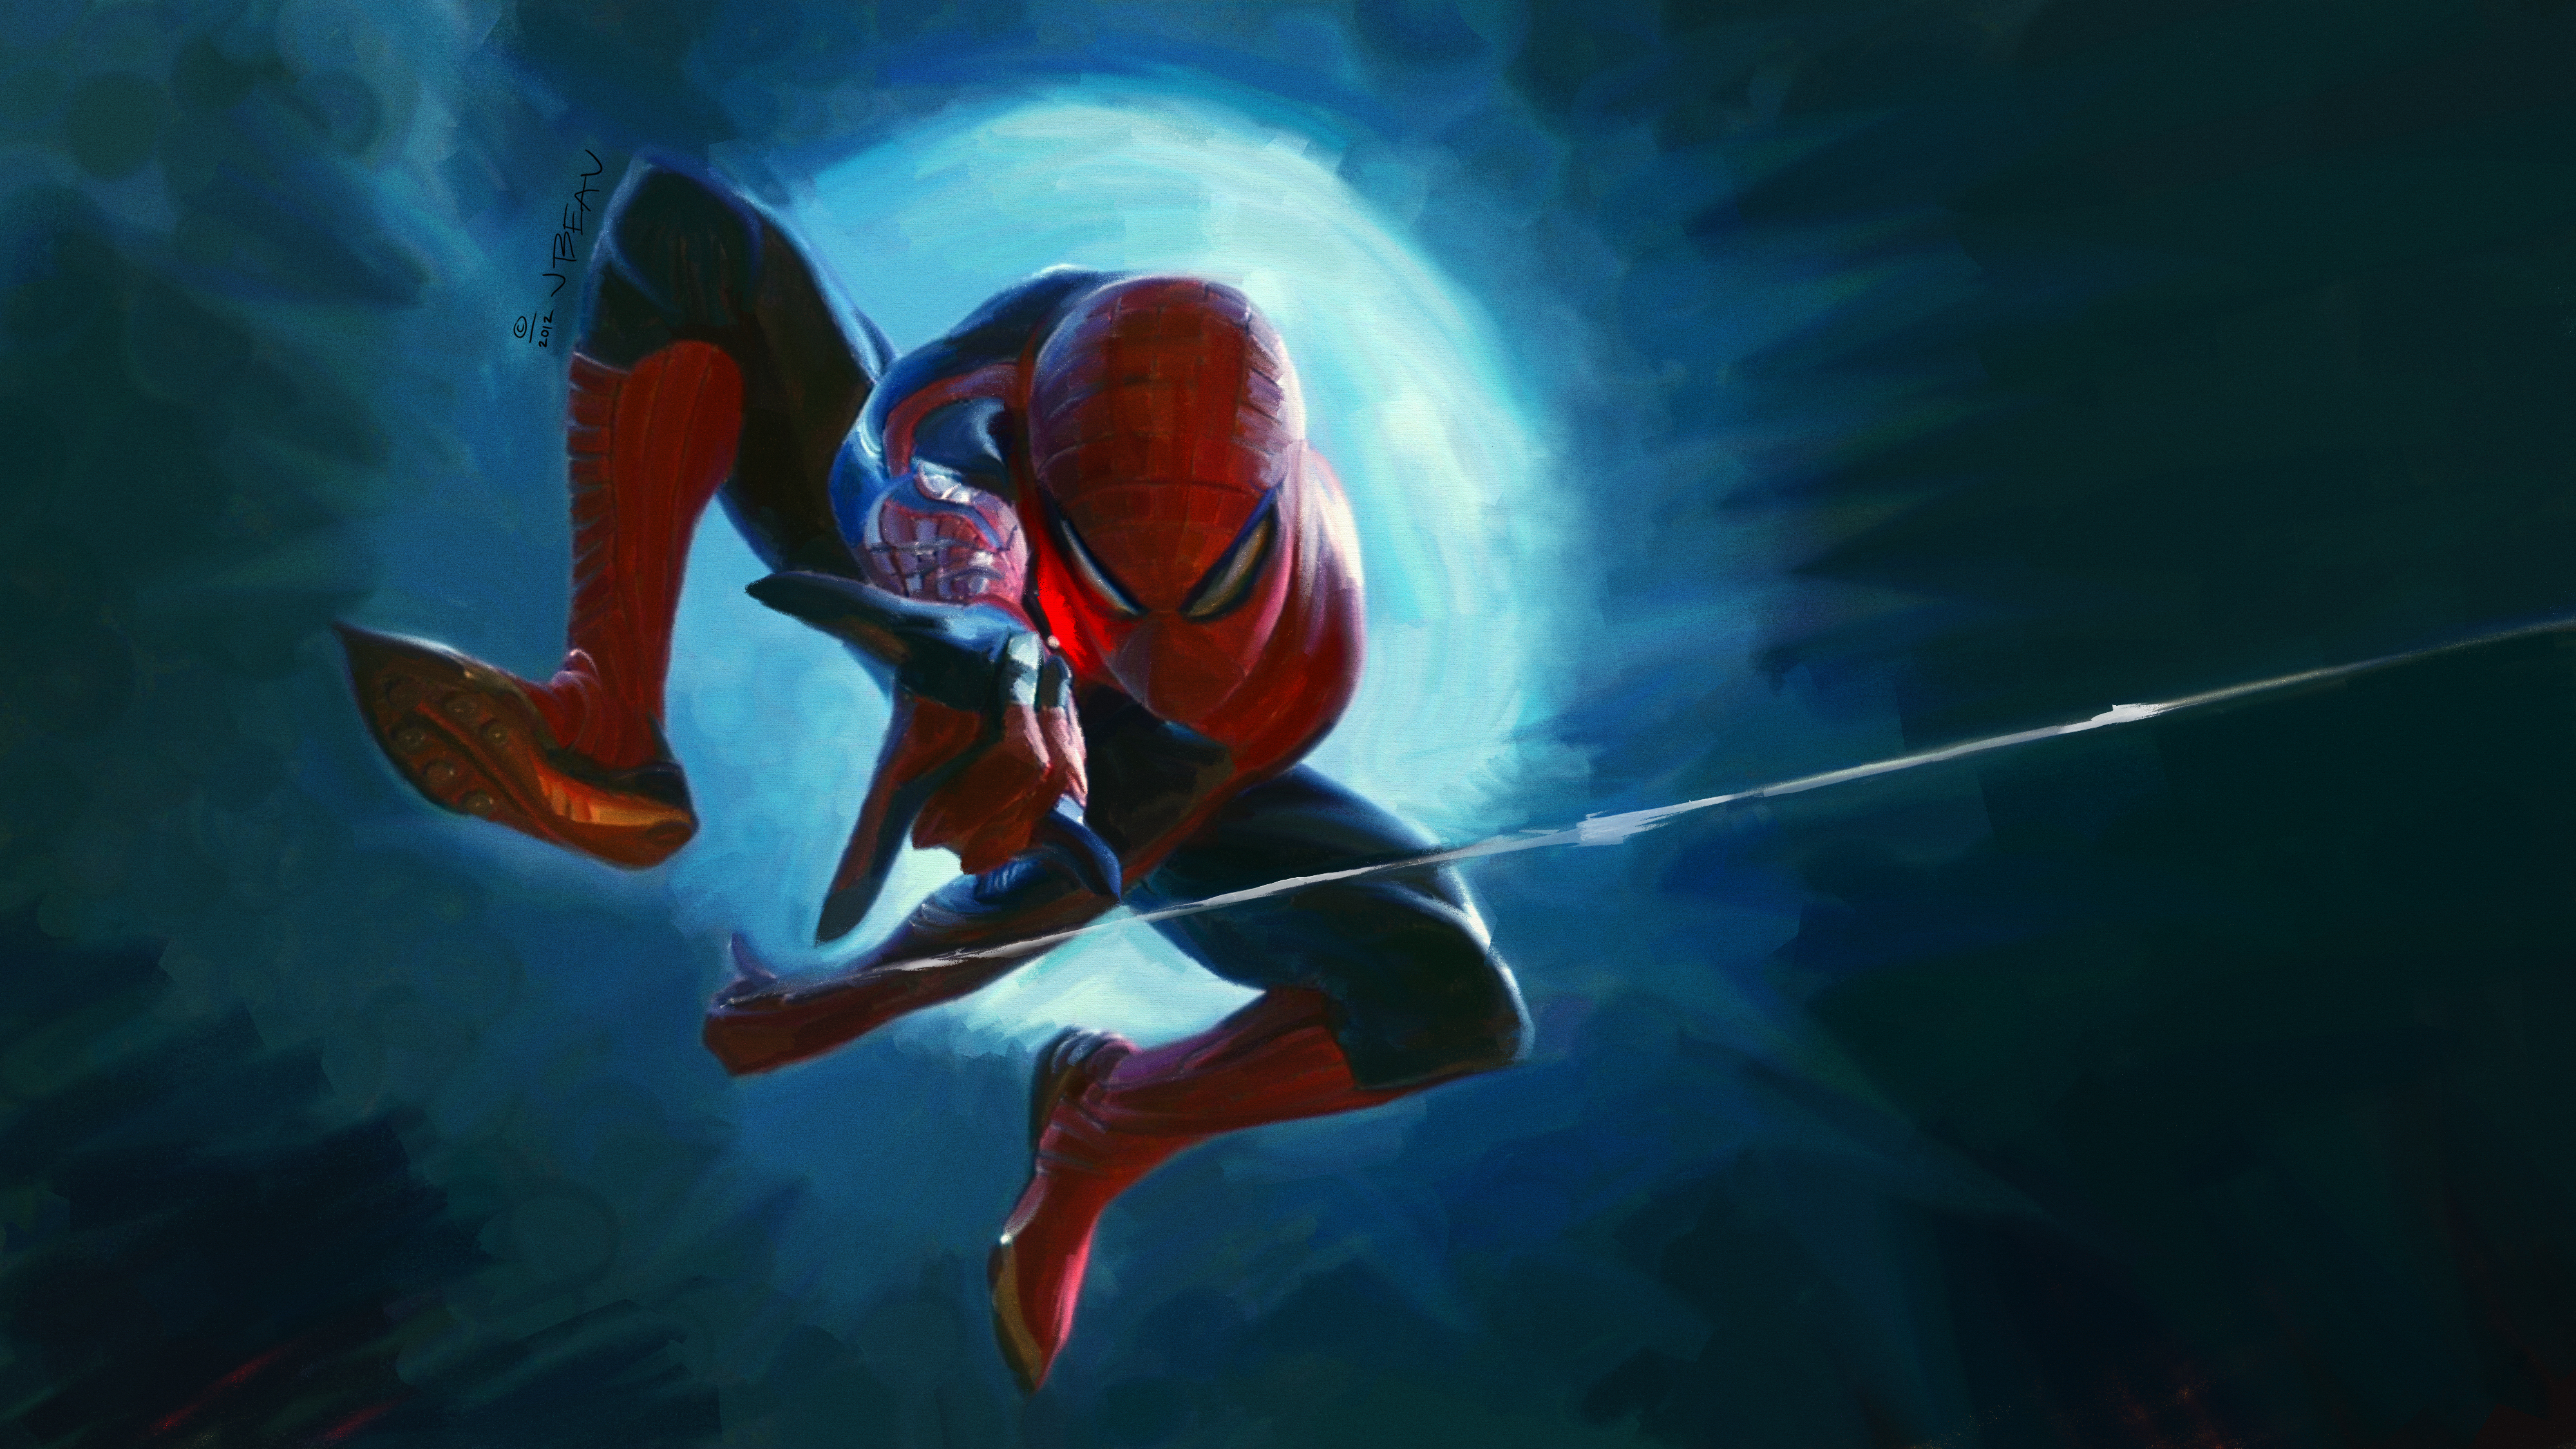 10 Top Spider Man 2099 Wallpaper Full Hd 1080p For Pc Desktop: Spider-Man 4k Ultra HD Wallpaper